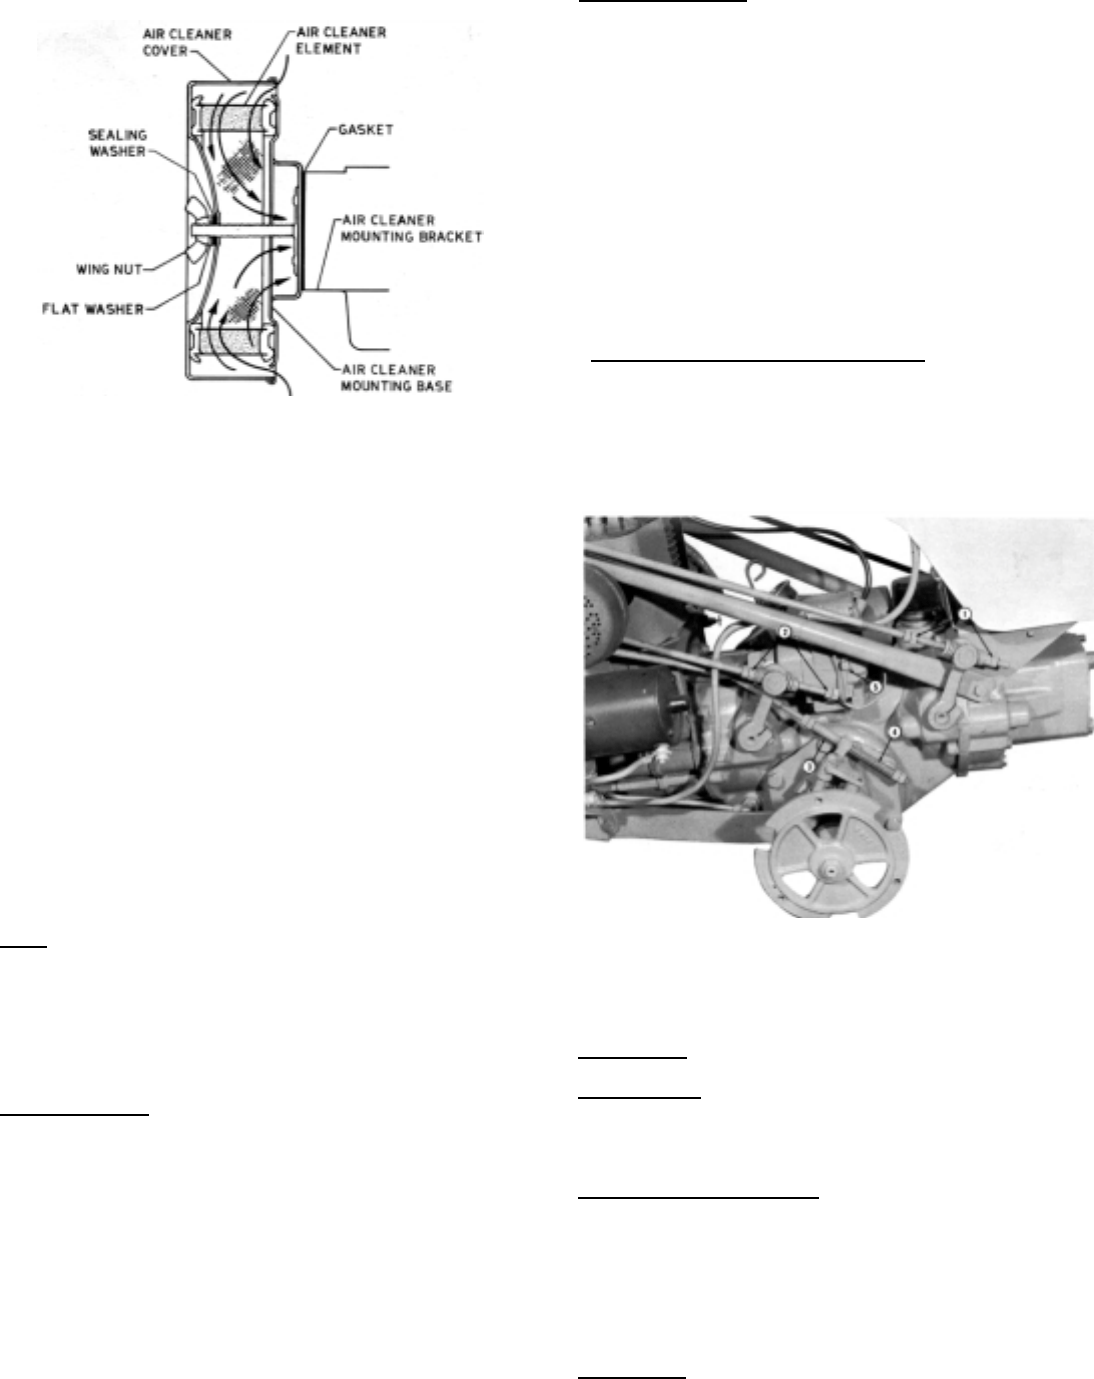 Gravely Convertible 7 6 Users Manual